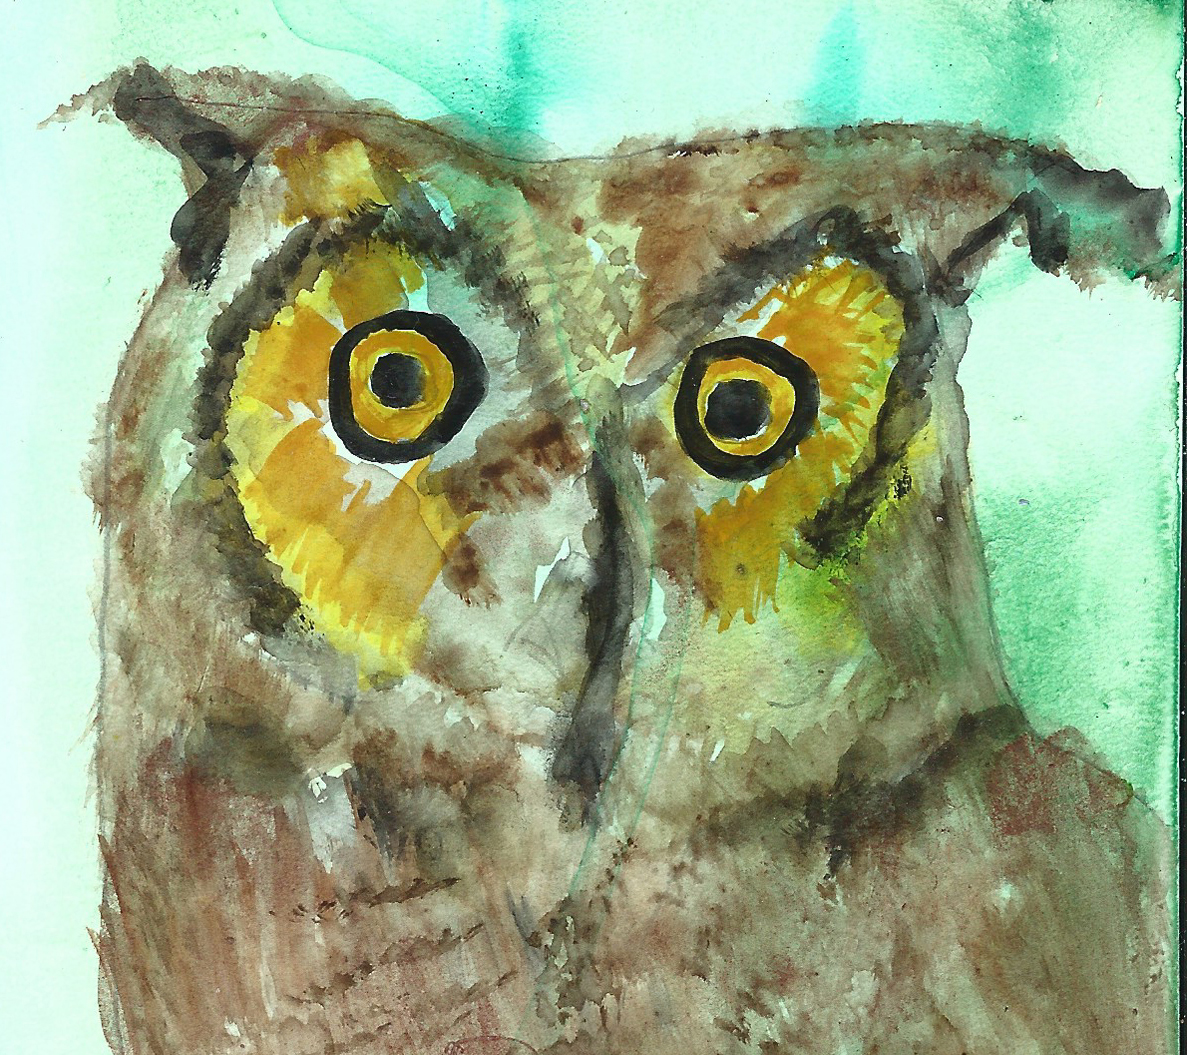 Owl One in Hyperspace Postcard, Watercolor by Susan Gainen